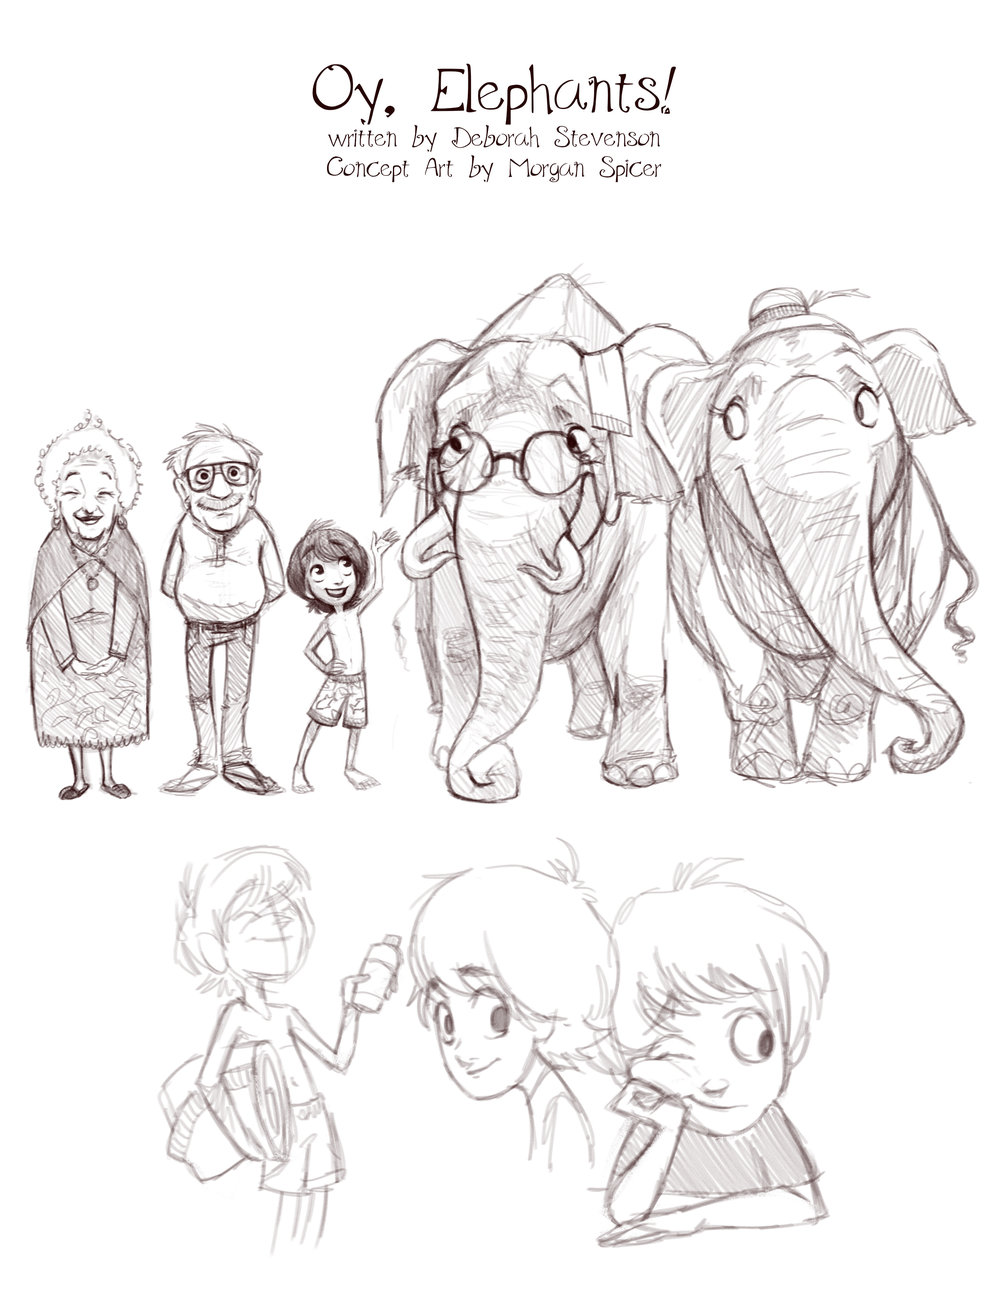 Concept art for Oy, Elephants!  (c) Morgan Spicer